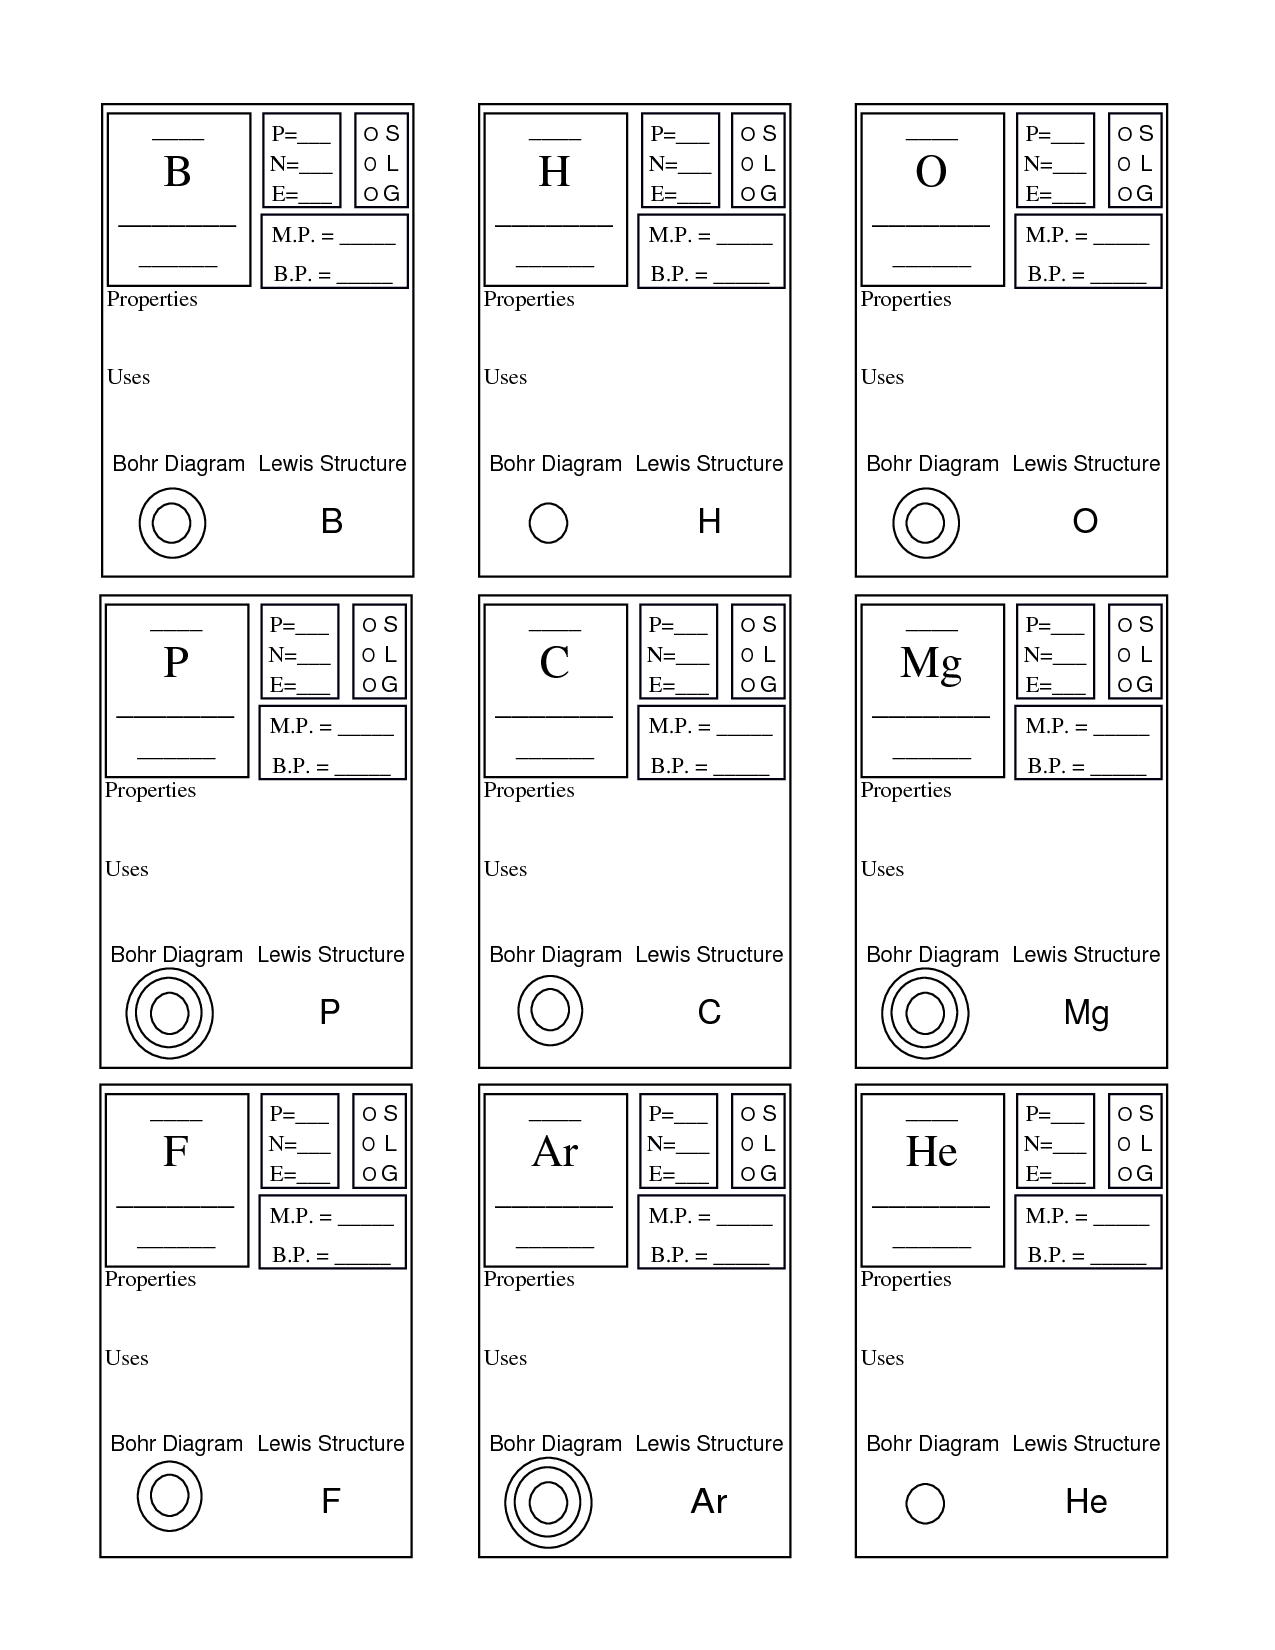 Periodic table basics worksheet answer key education pinterest periodic table basics worksheet answer key gamestrikefo Images